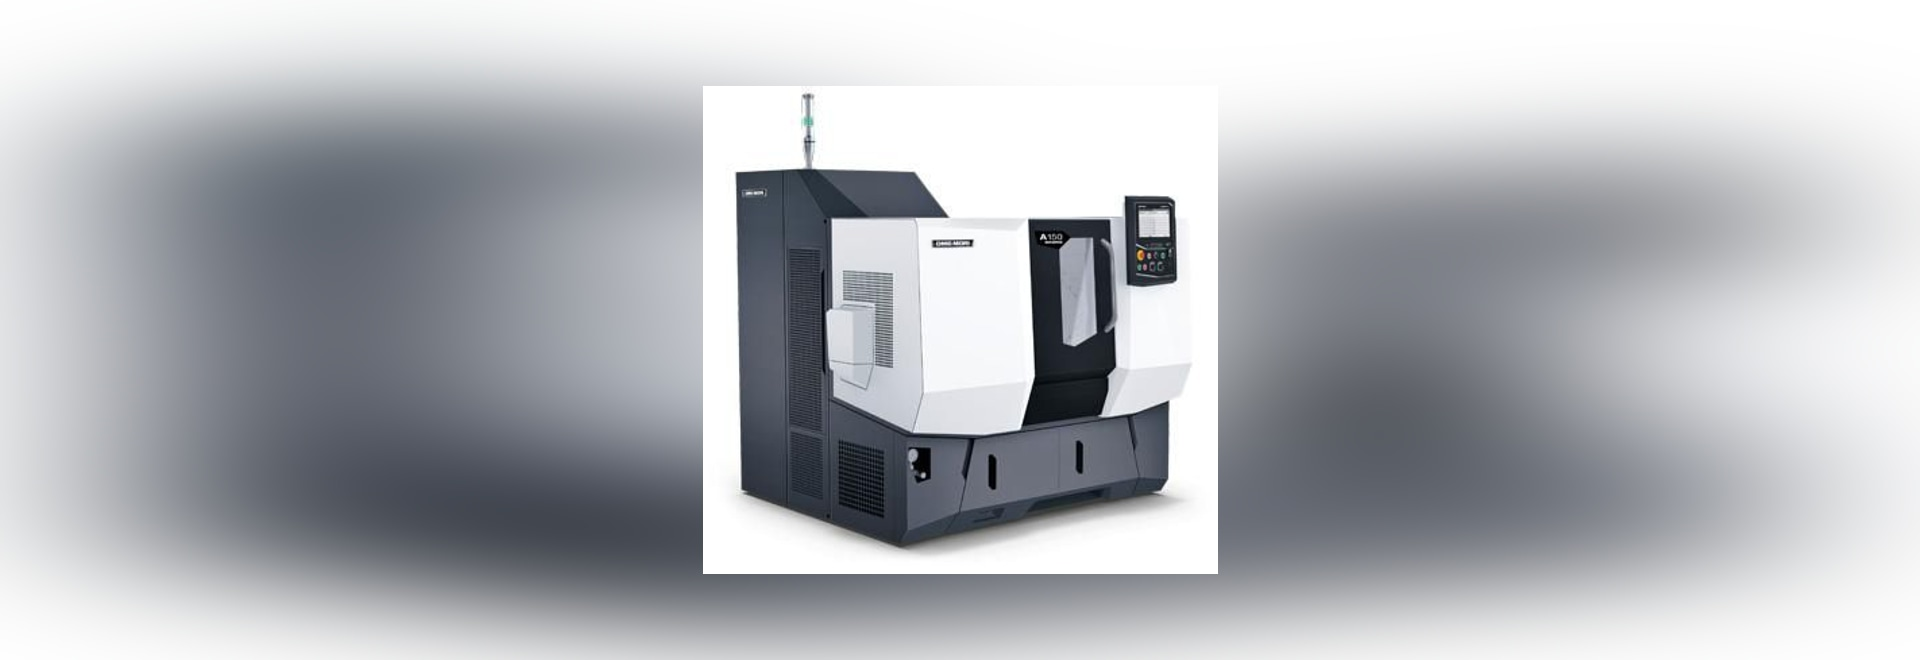 NEW: CNC turning center by DMG MORI